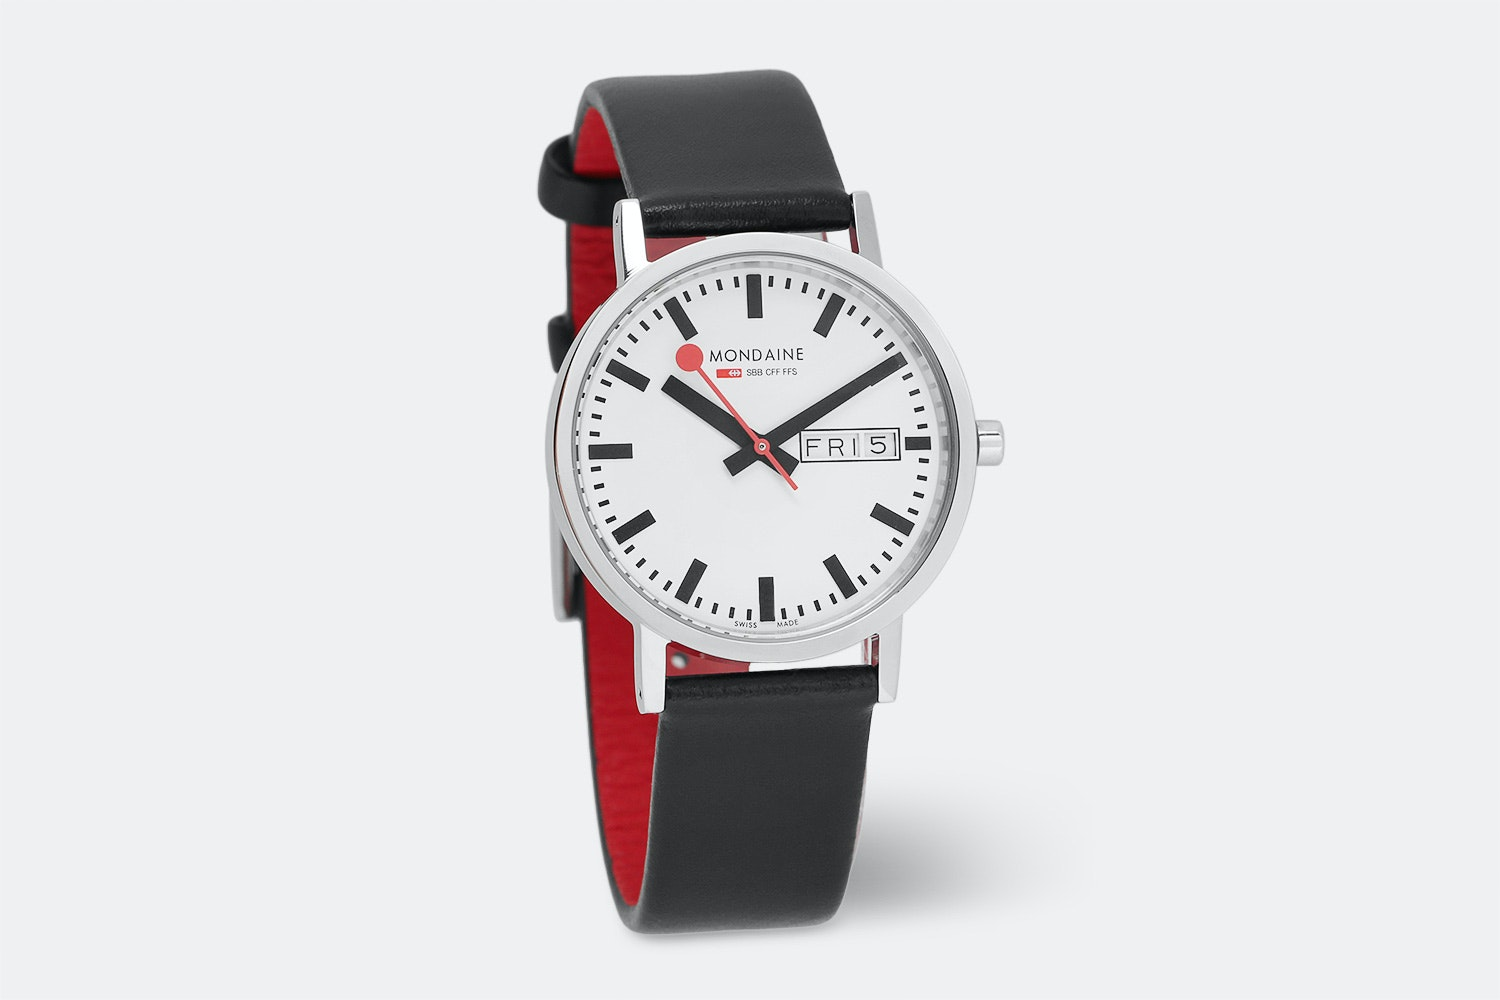 Mondaine Classic Quartz Watch